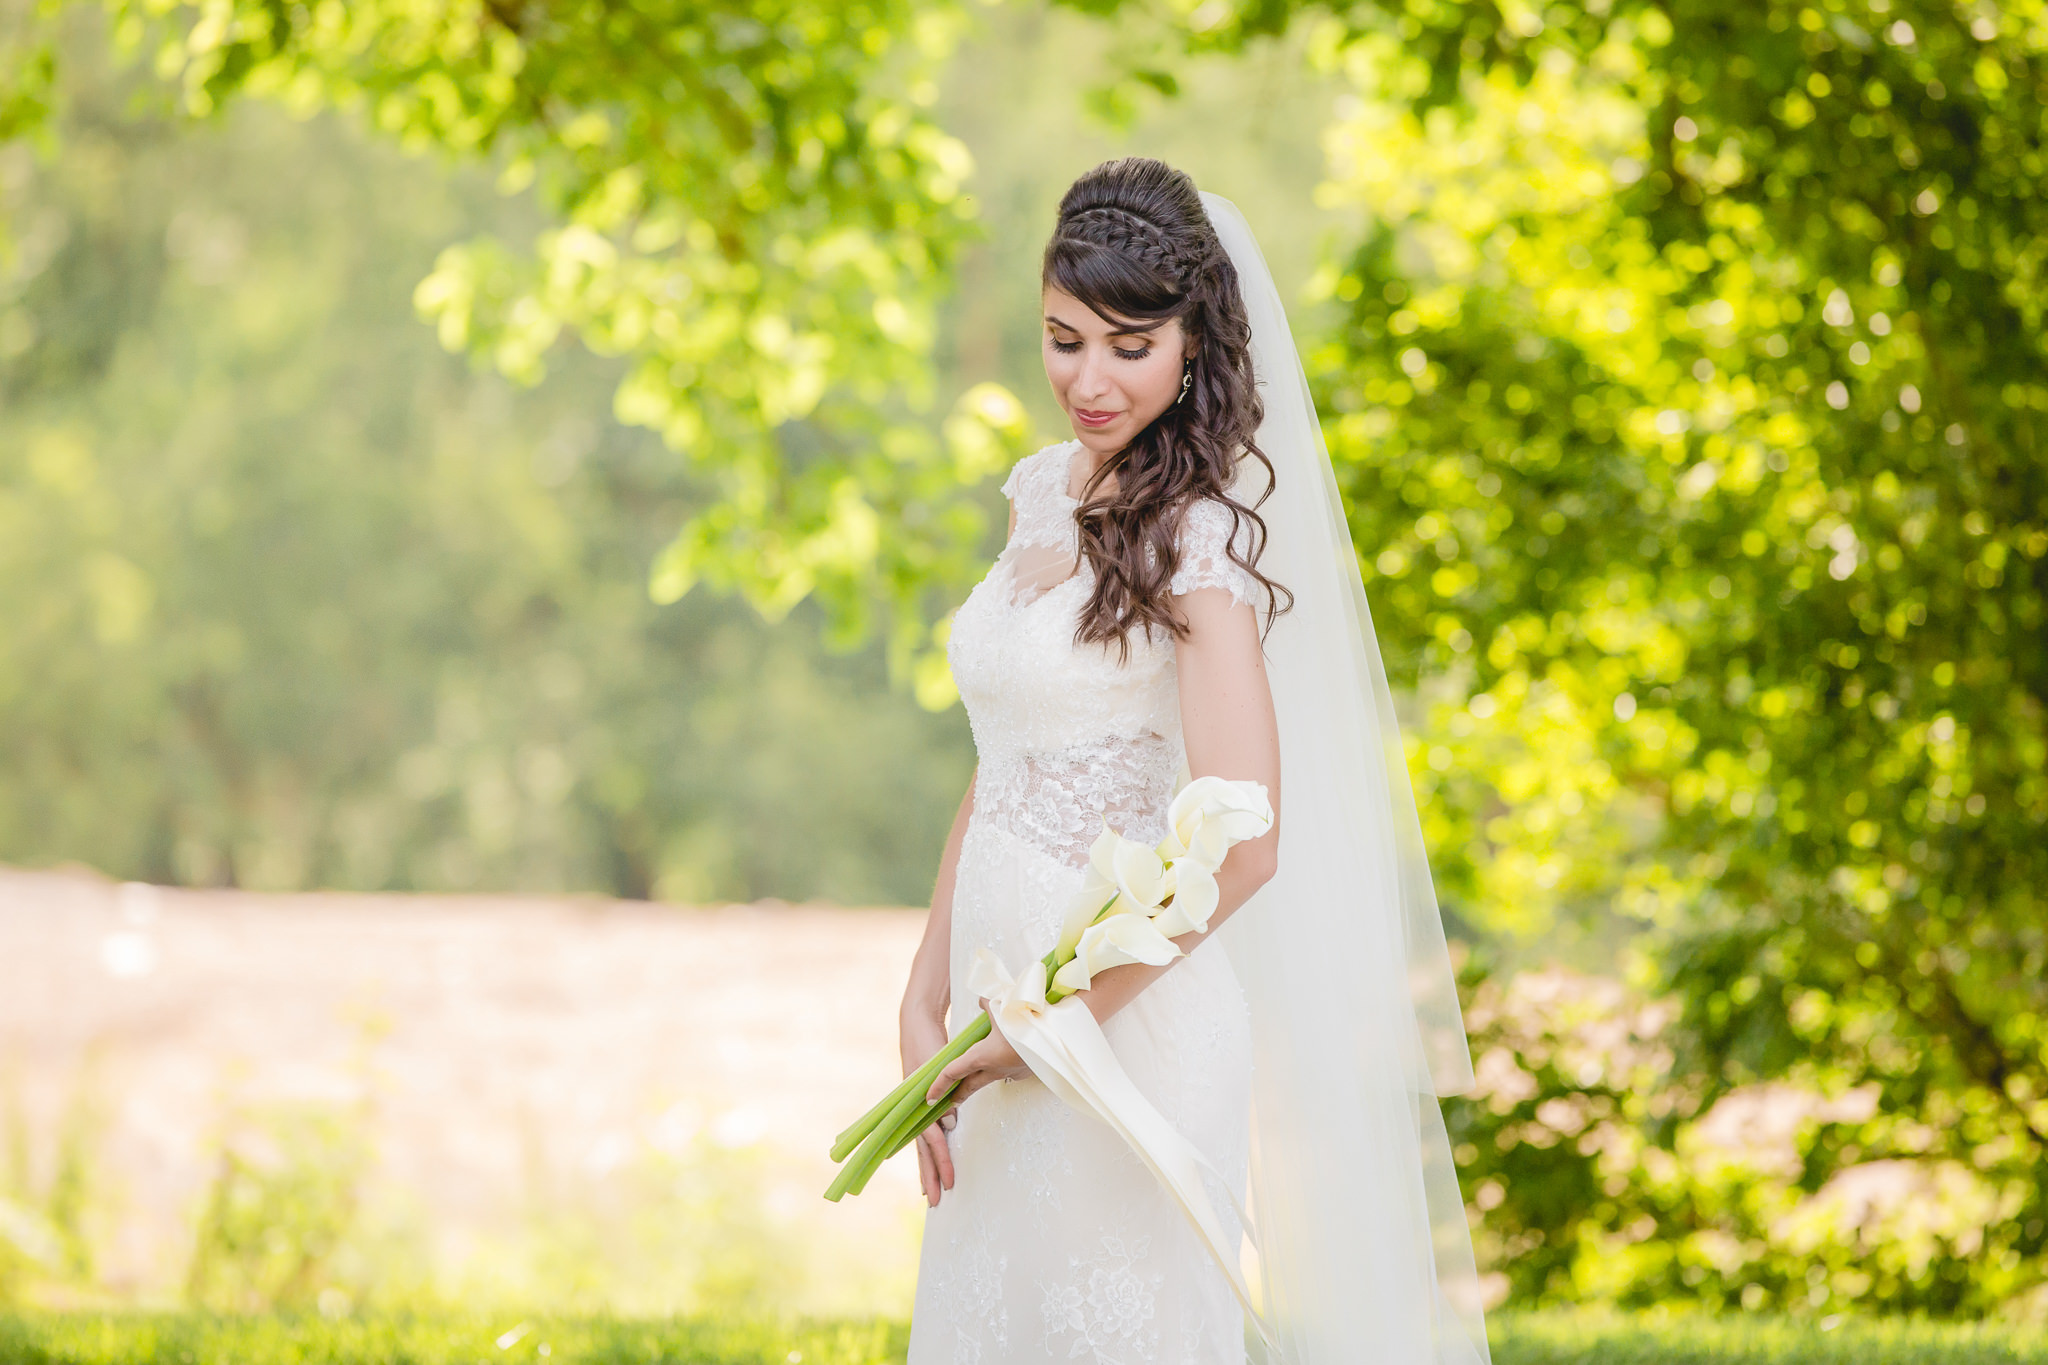 Bride poses with her bouquet of calla lilies